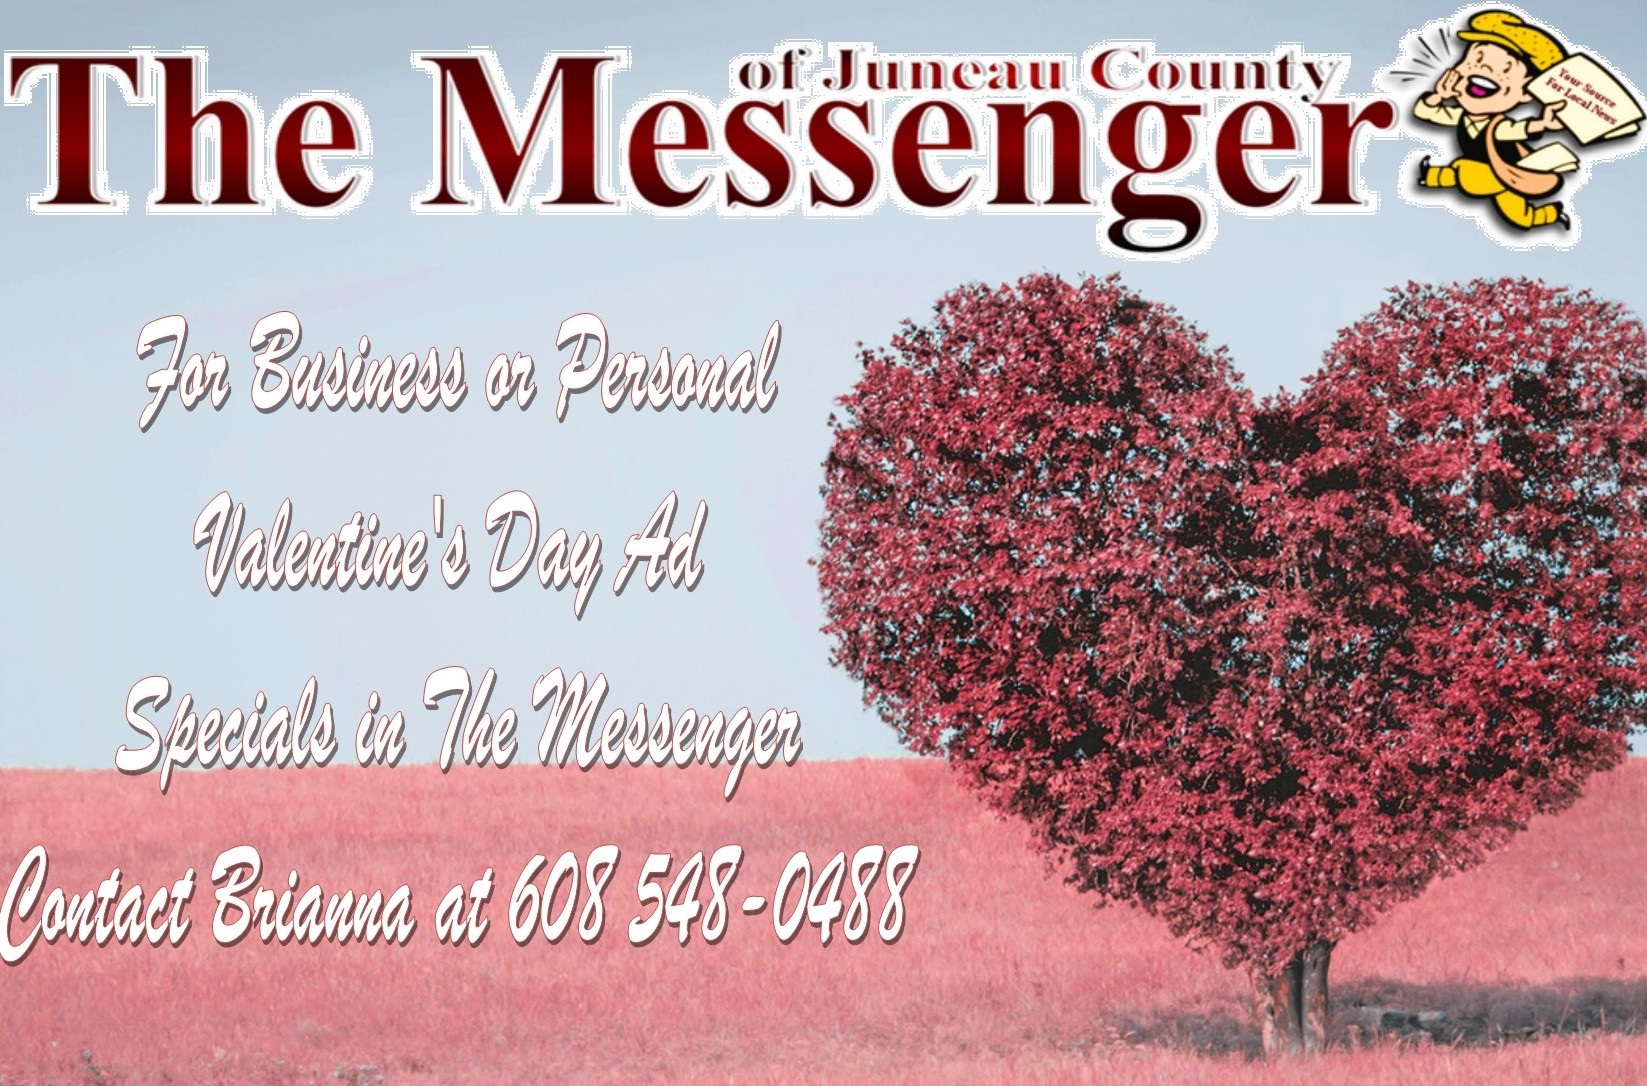 The messenger of juneau county - The Messenger Of Juneau County 29